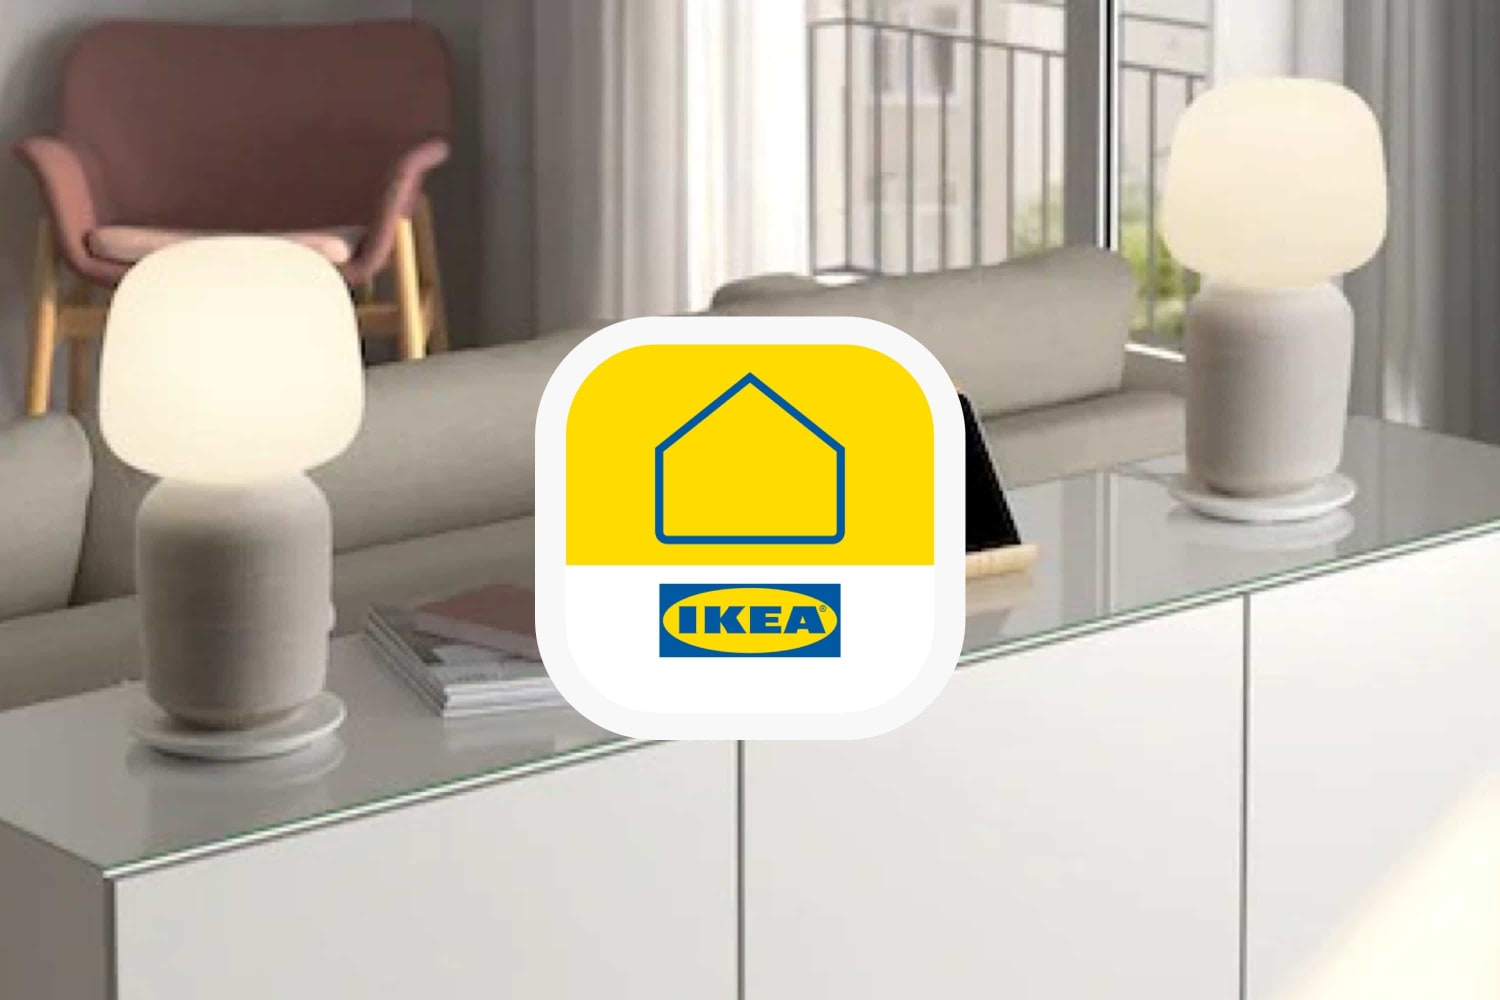 ikea-s-scenes-and-shortcut-buttons-are-here-to-make-your-day-effortless-20201127-1